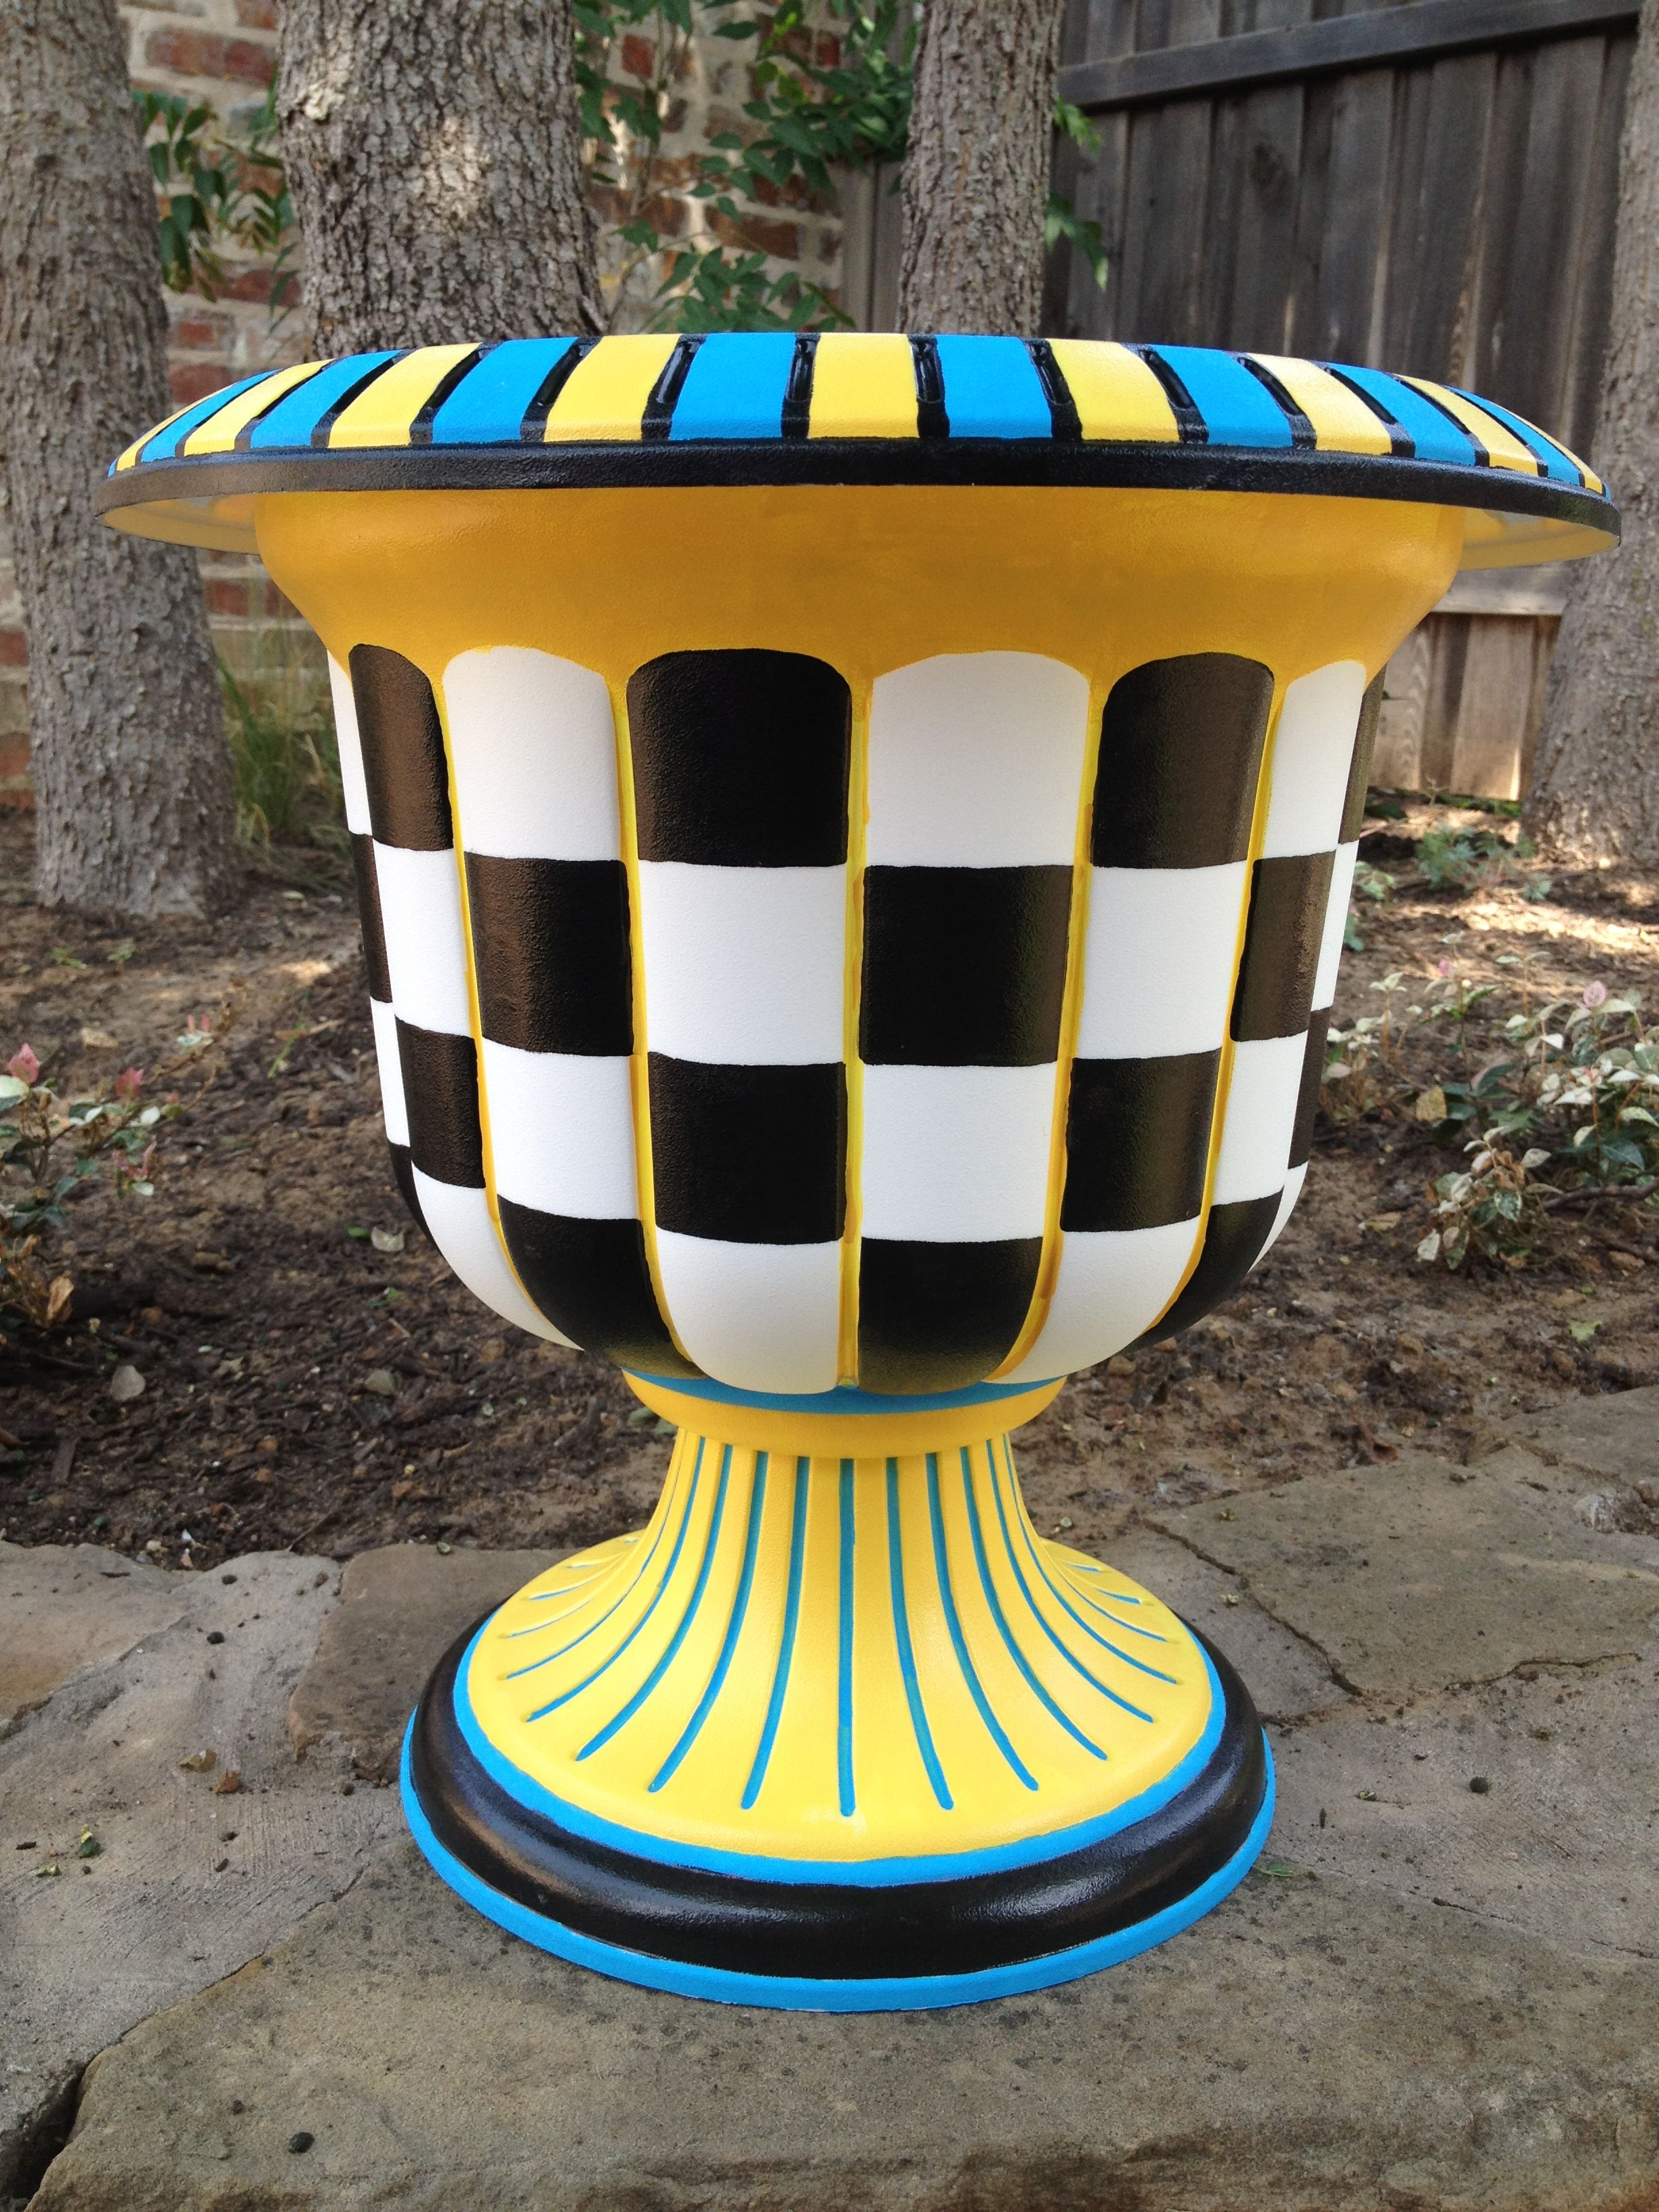 or stripes favors go planter planters use diy dots simple supplies whimsical an polka wbdiy paint can designs i painted you your step elegant sponges using to projects like argyle create did